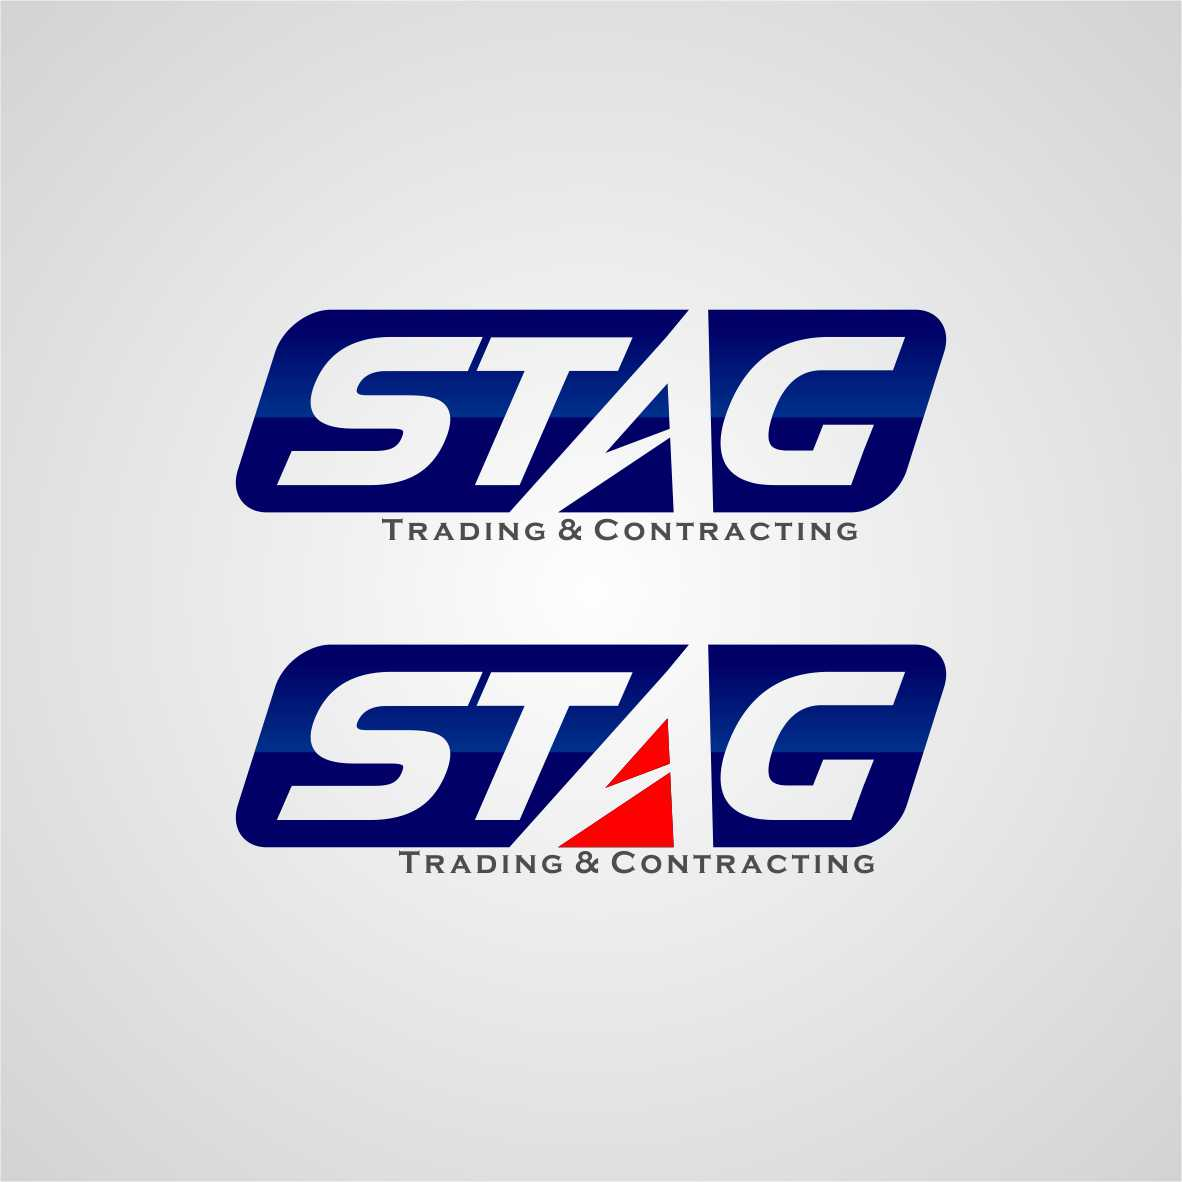 Logo Design by arteo_design - Entry No. 264 in the Logo Design Contest Captivating Logo Design for STAG Trading & Contracting.